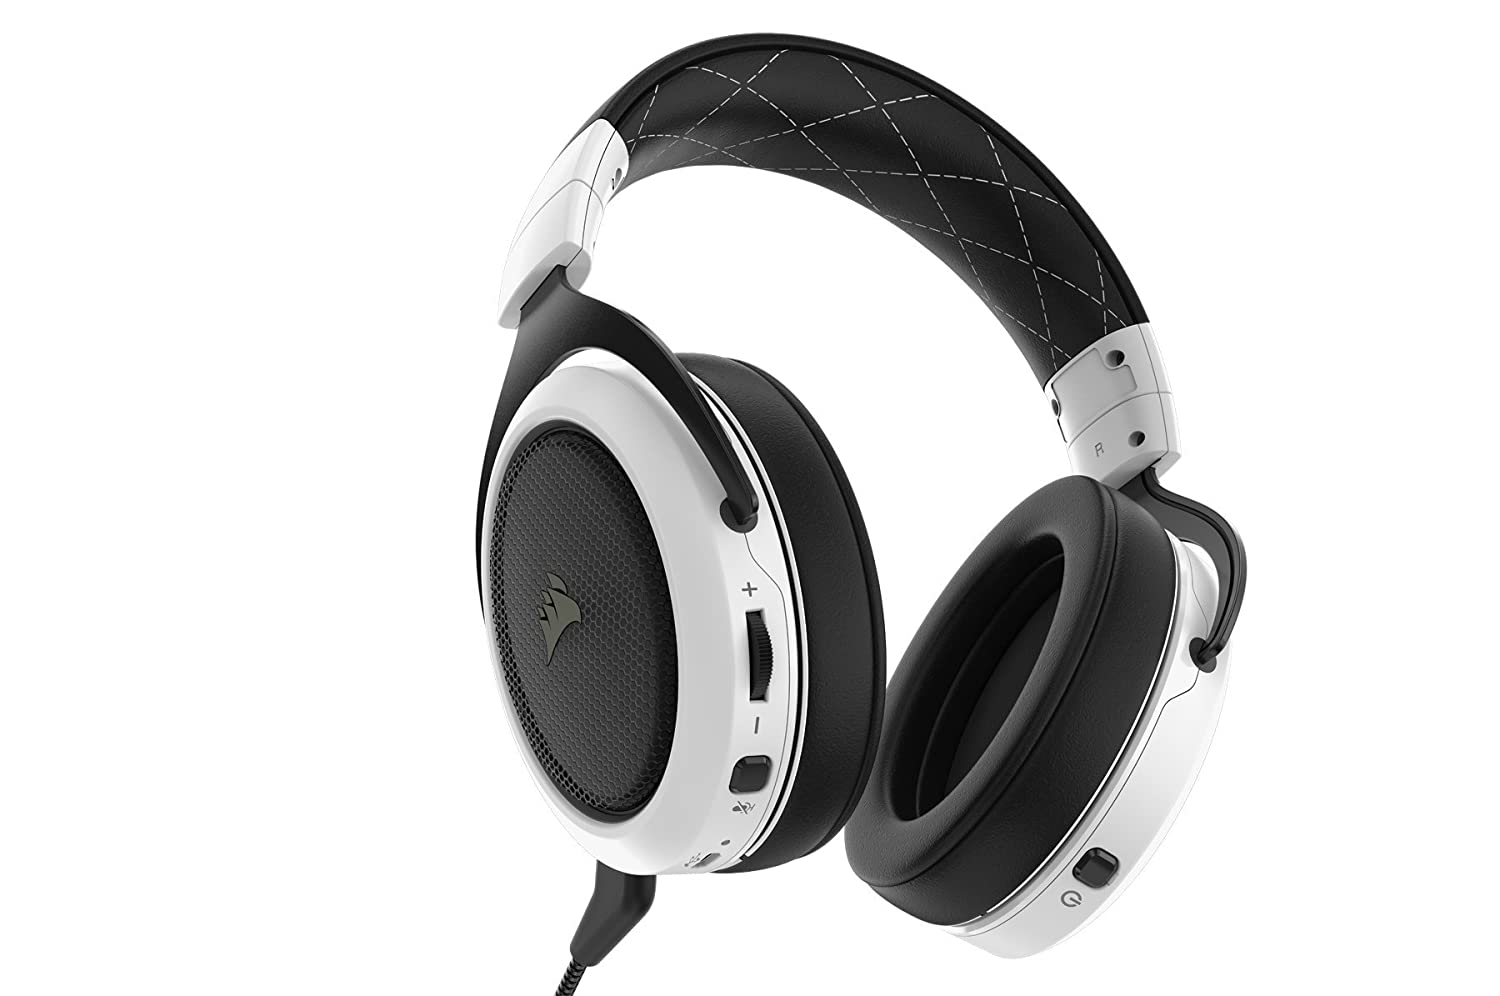 CORSAIR HS50 - Stereo Gaming Headset - Discord Certified Headphones – Green, and CORSAIR ST100 RGB - Premium RGB Gaming Headset Stand